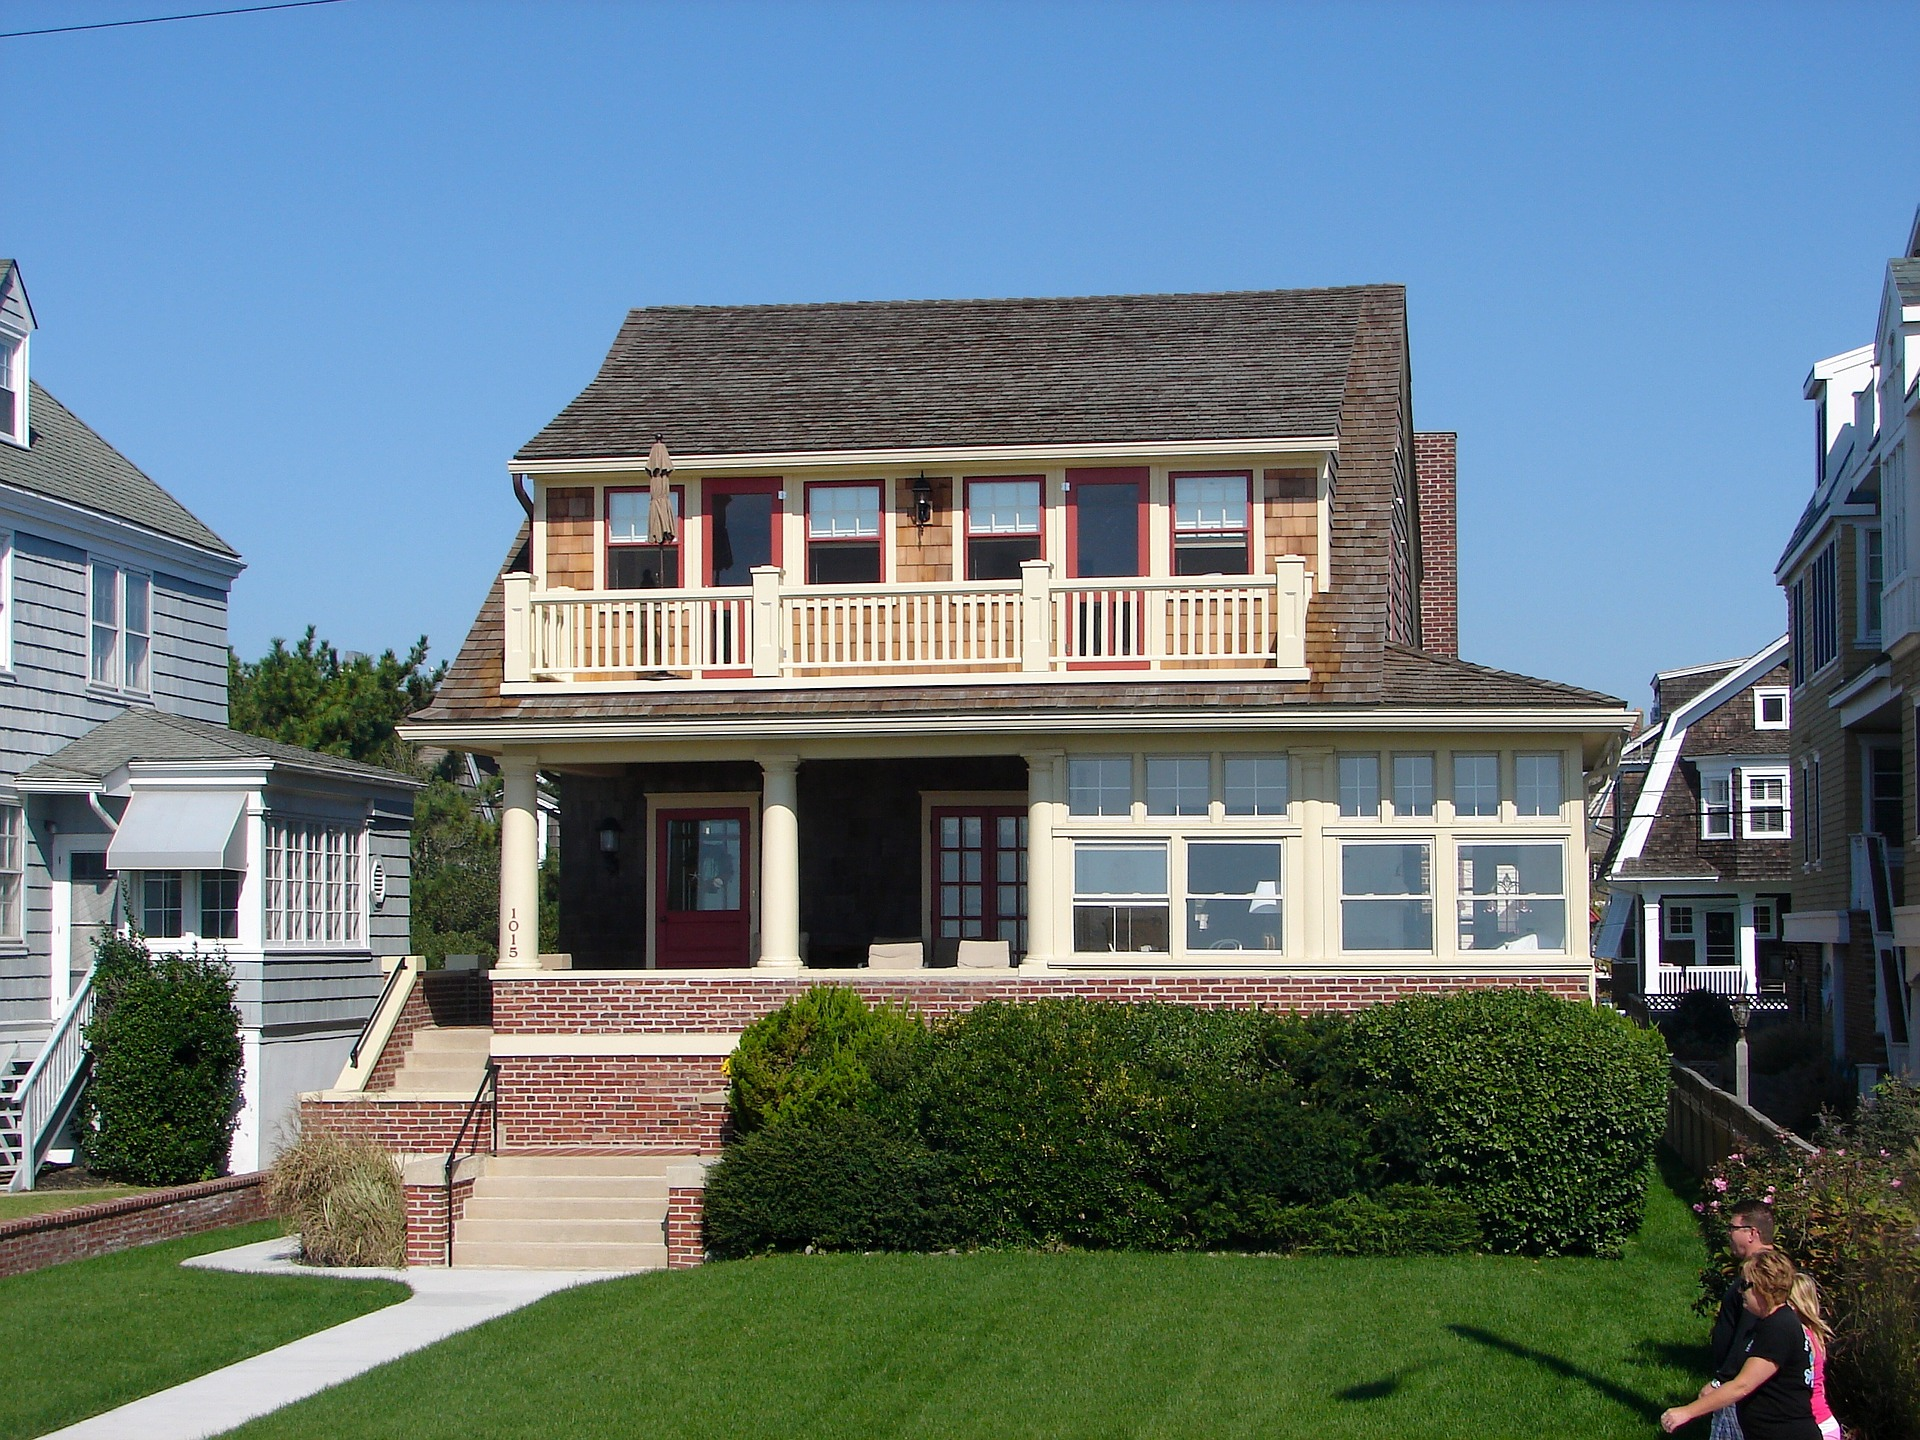 Seattle Residential Property Managers